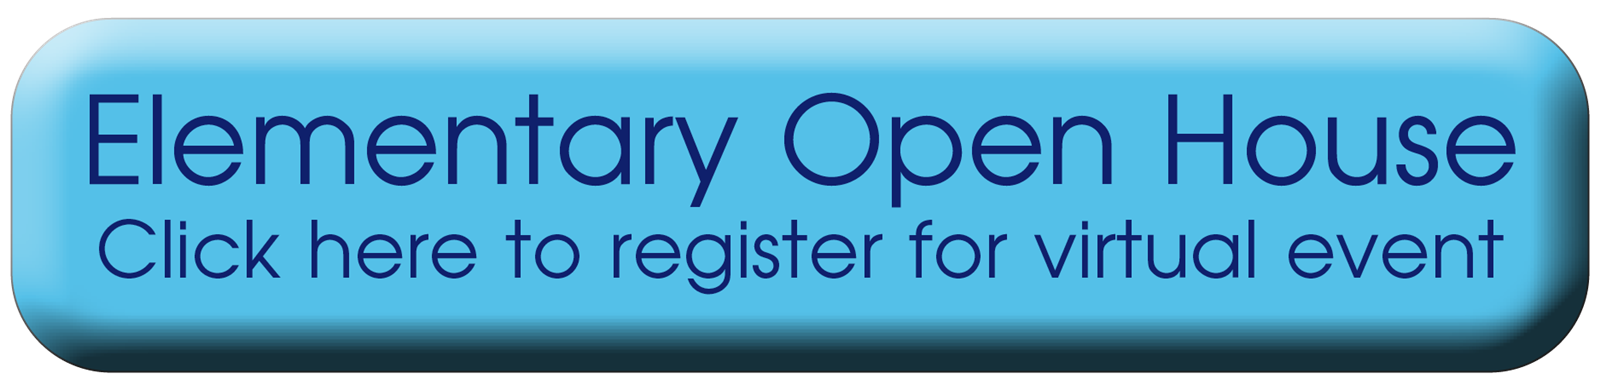 click here to register for the elementary open house